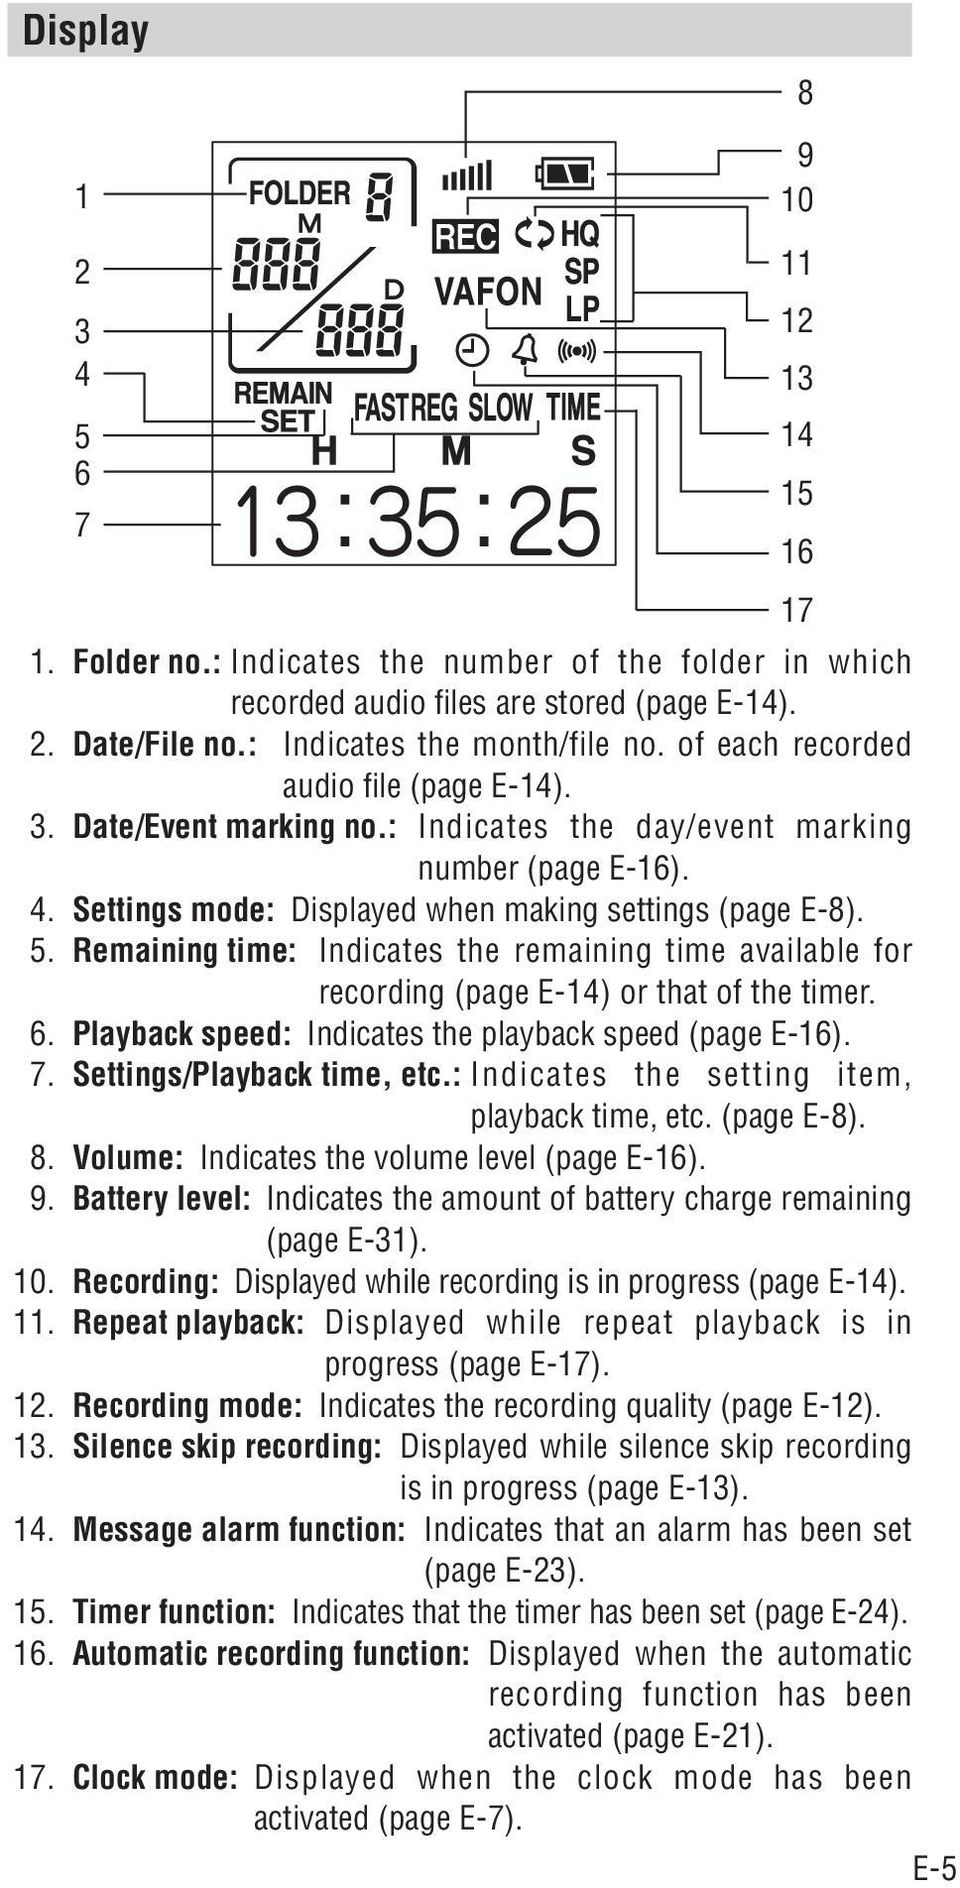 Remaining time: Indicates the remaining time available for recording (page E-4) or that of the timer. 6. Playback speed: Indicates the playback speed (page E-6). 7. Settings/Playback time, etc.